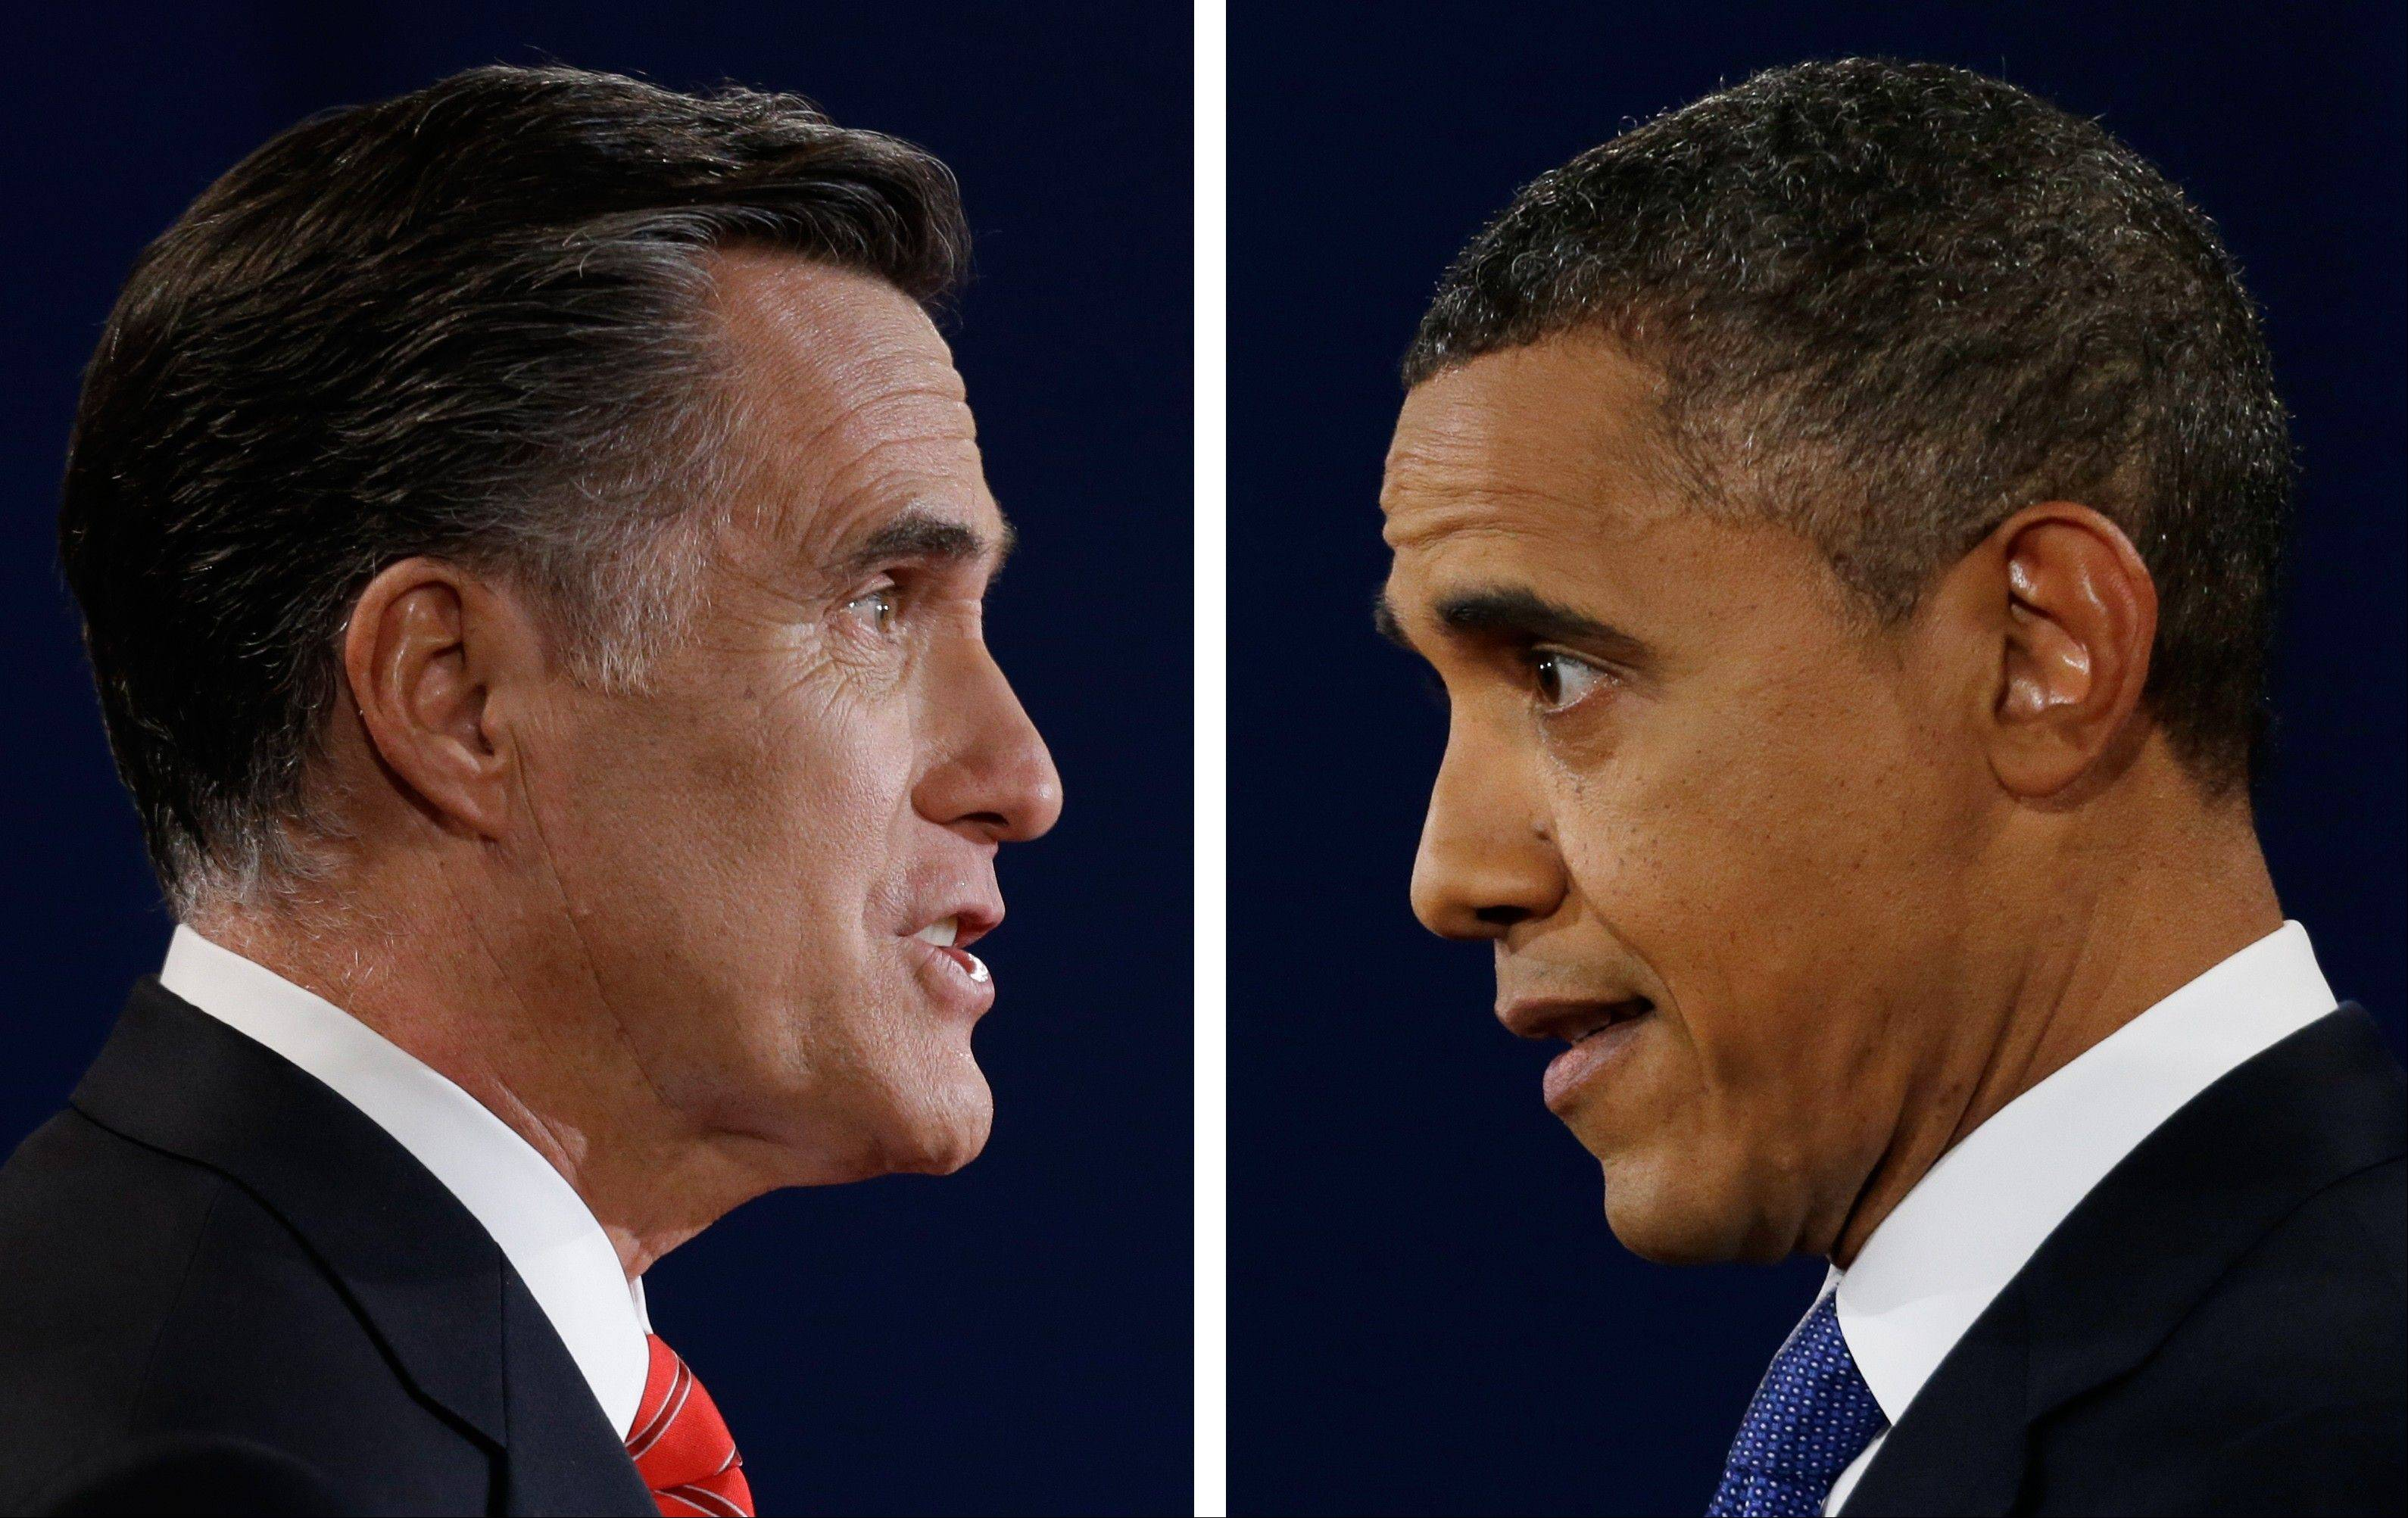 Republican presidential nominee Mitt Romney and President Barack Obama speak during their first presidential debate at the University of Denver, Colo. In a September Pew Research Center poll 48 percent of registered voters said Obama was more 'honest and truthful,' to 34 percent who felt Romney was. And a CBS News/New York Times survey earlier in September asked separately whether each candidate was honest and trustworthy: 58 percent of likely voters described Obama that way while 53 percent said that of Romney.